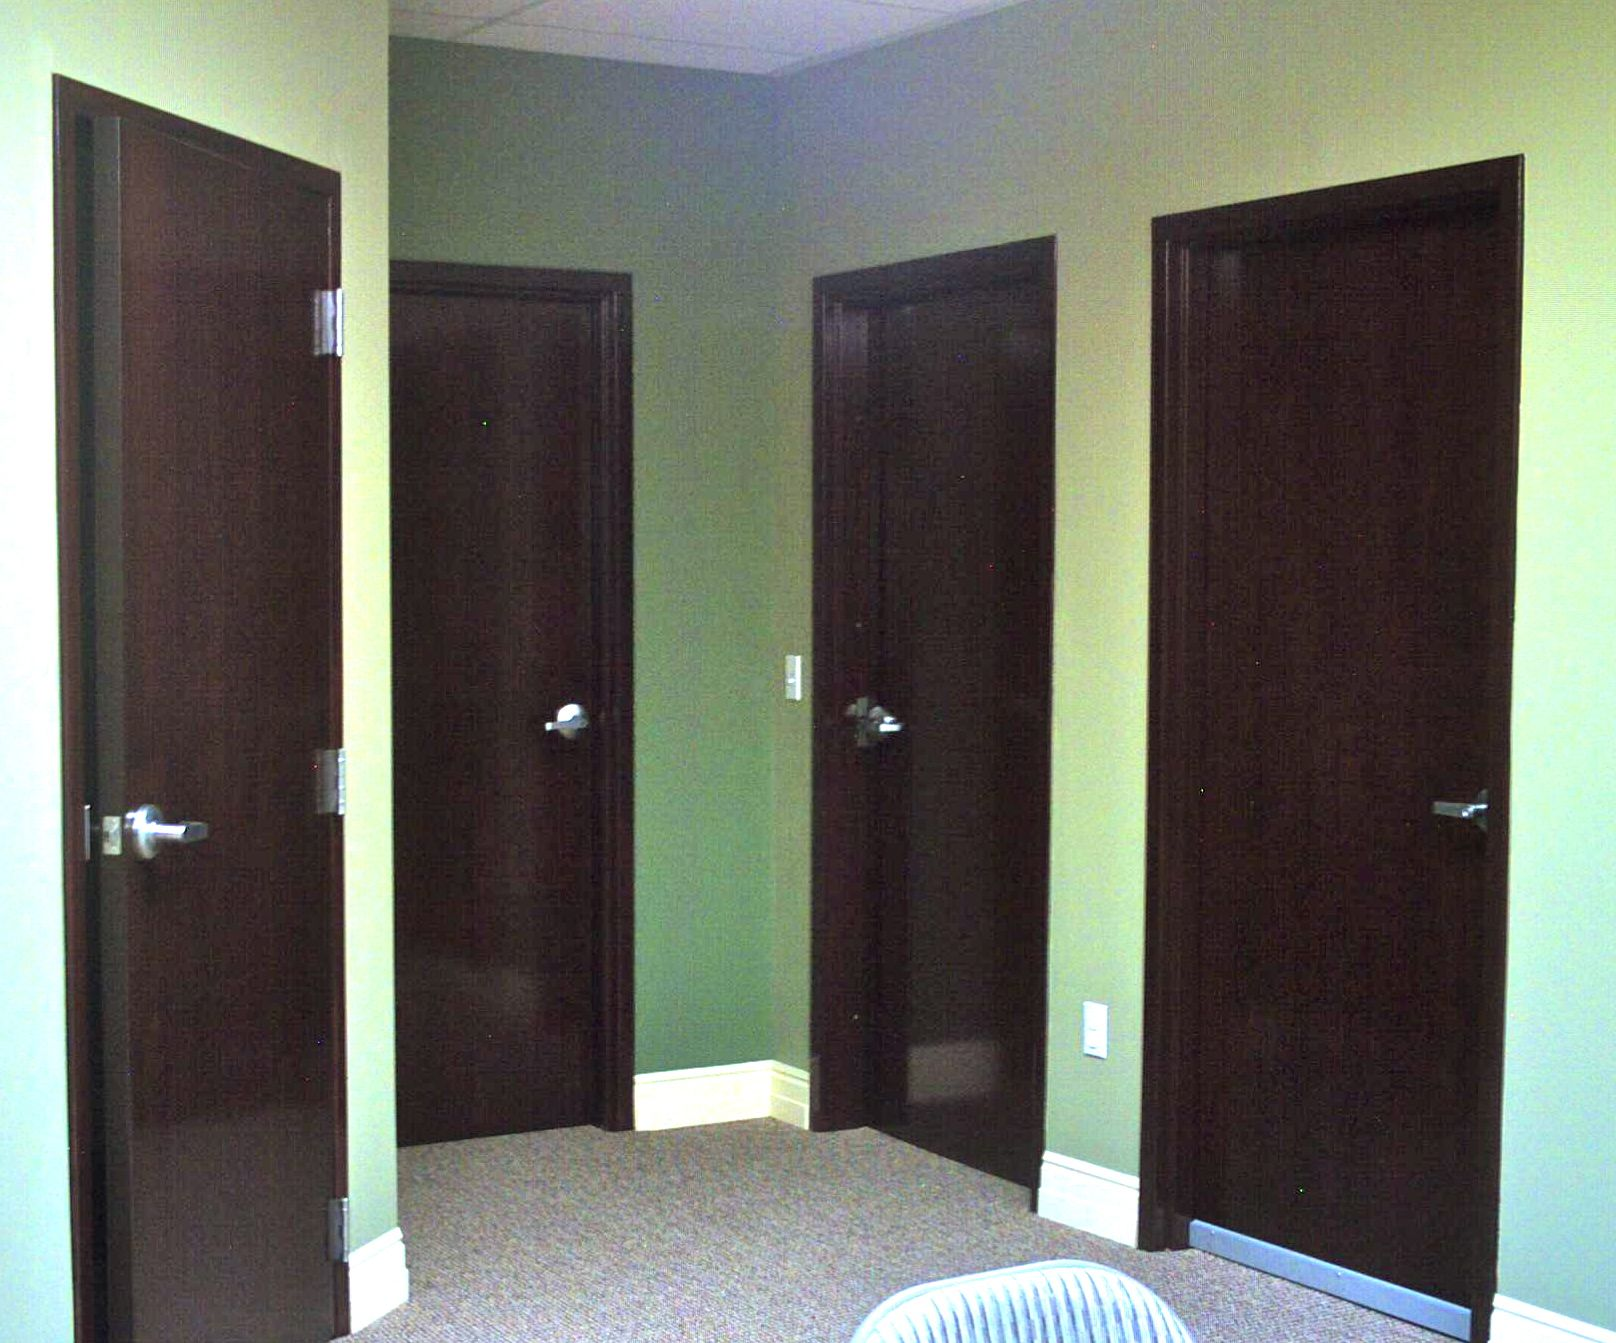 COMMERCIAL INTERIOR WOOD DOORS & Commercial interior wood door